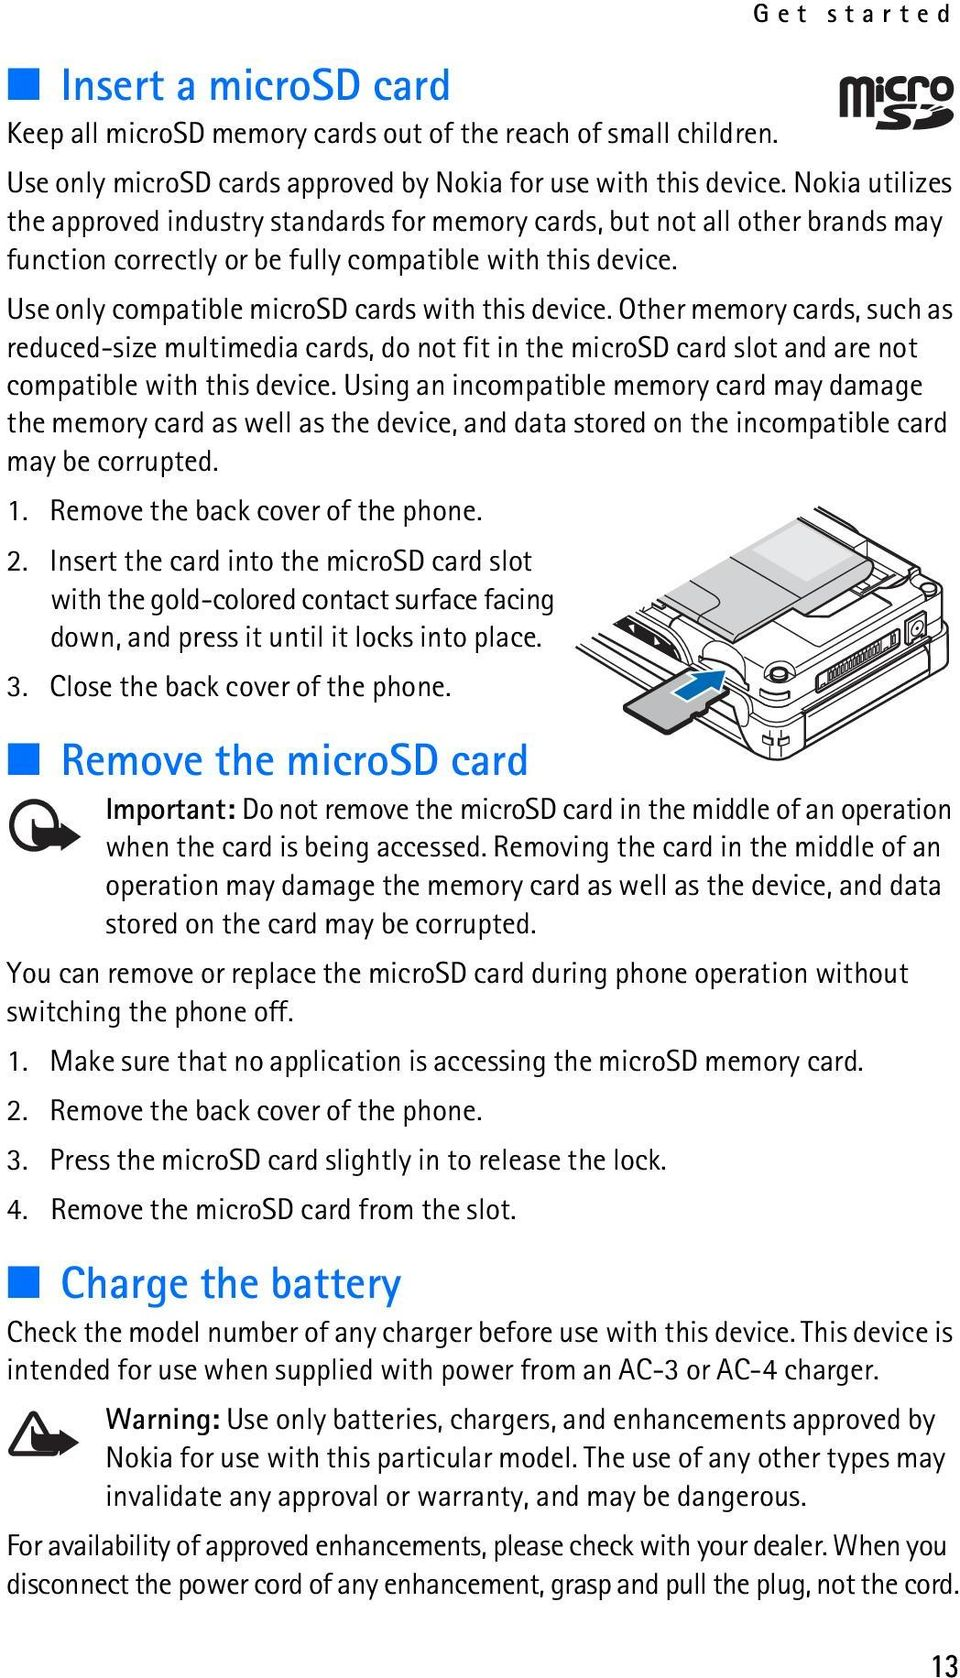 Use only compatible microsd cards with this device. Other memory cards, such as reduced-size multimedia cards, do not fit in the microsd card slot and are not compatible with this device.